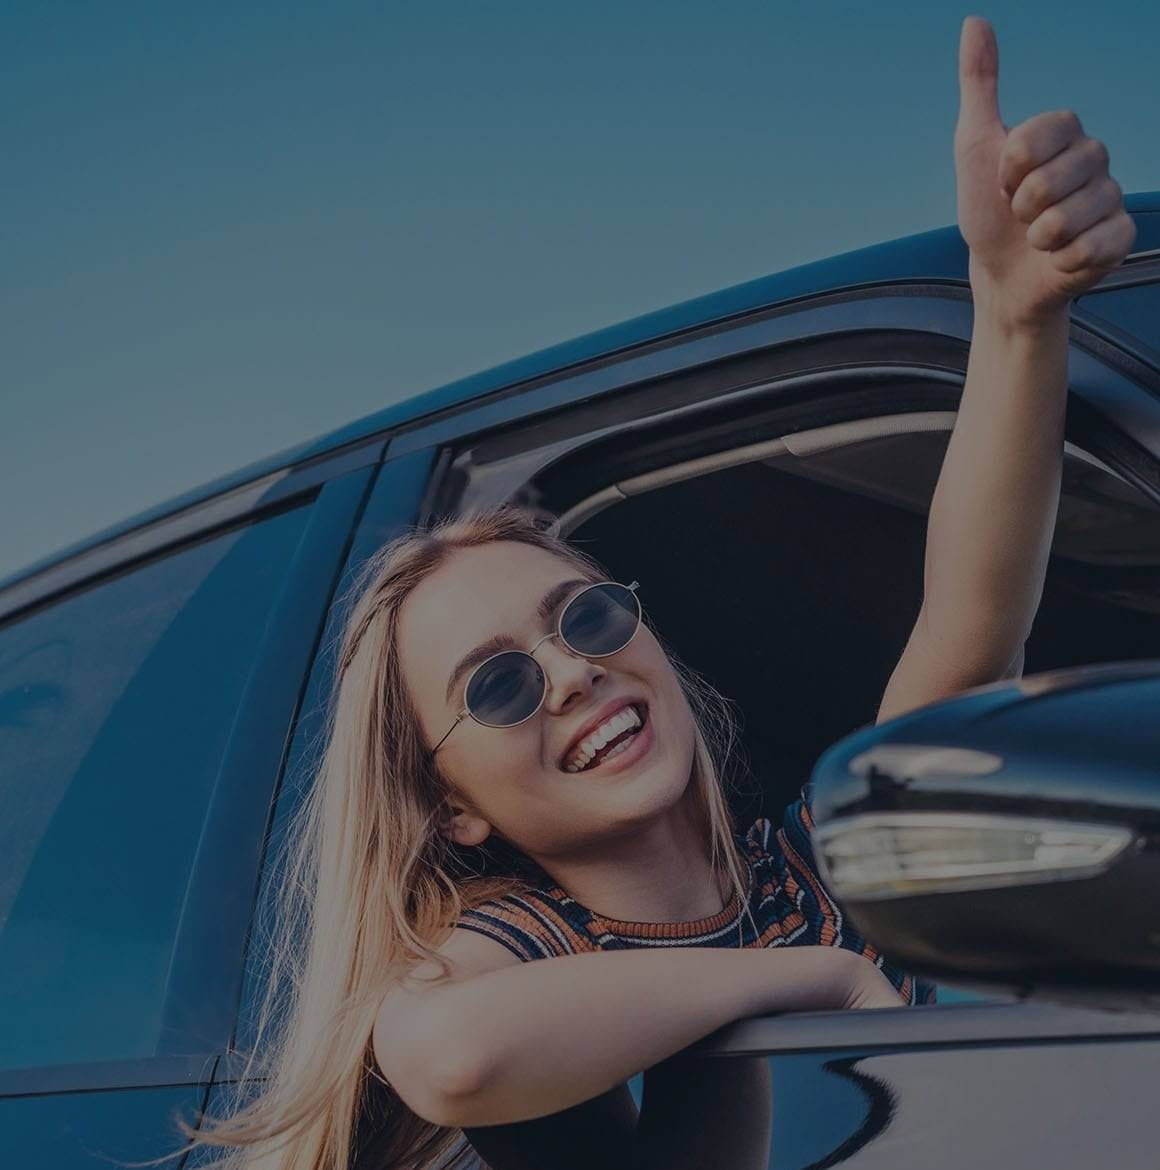 Get the best insurePink car insurance prices today